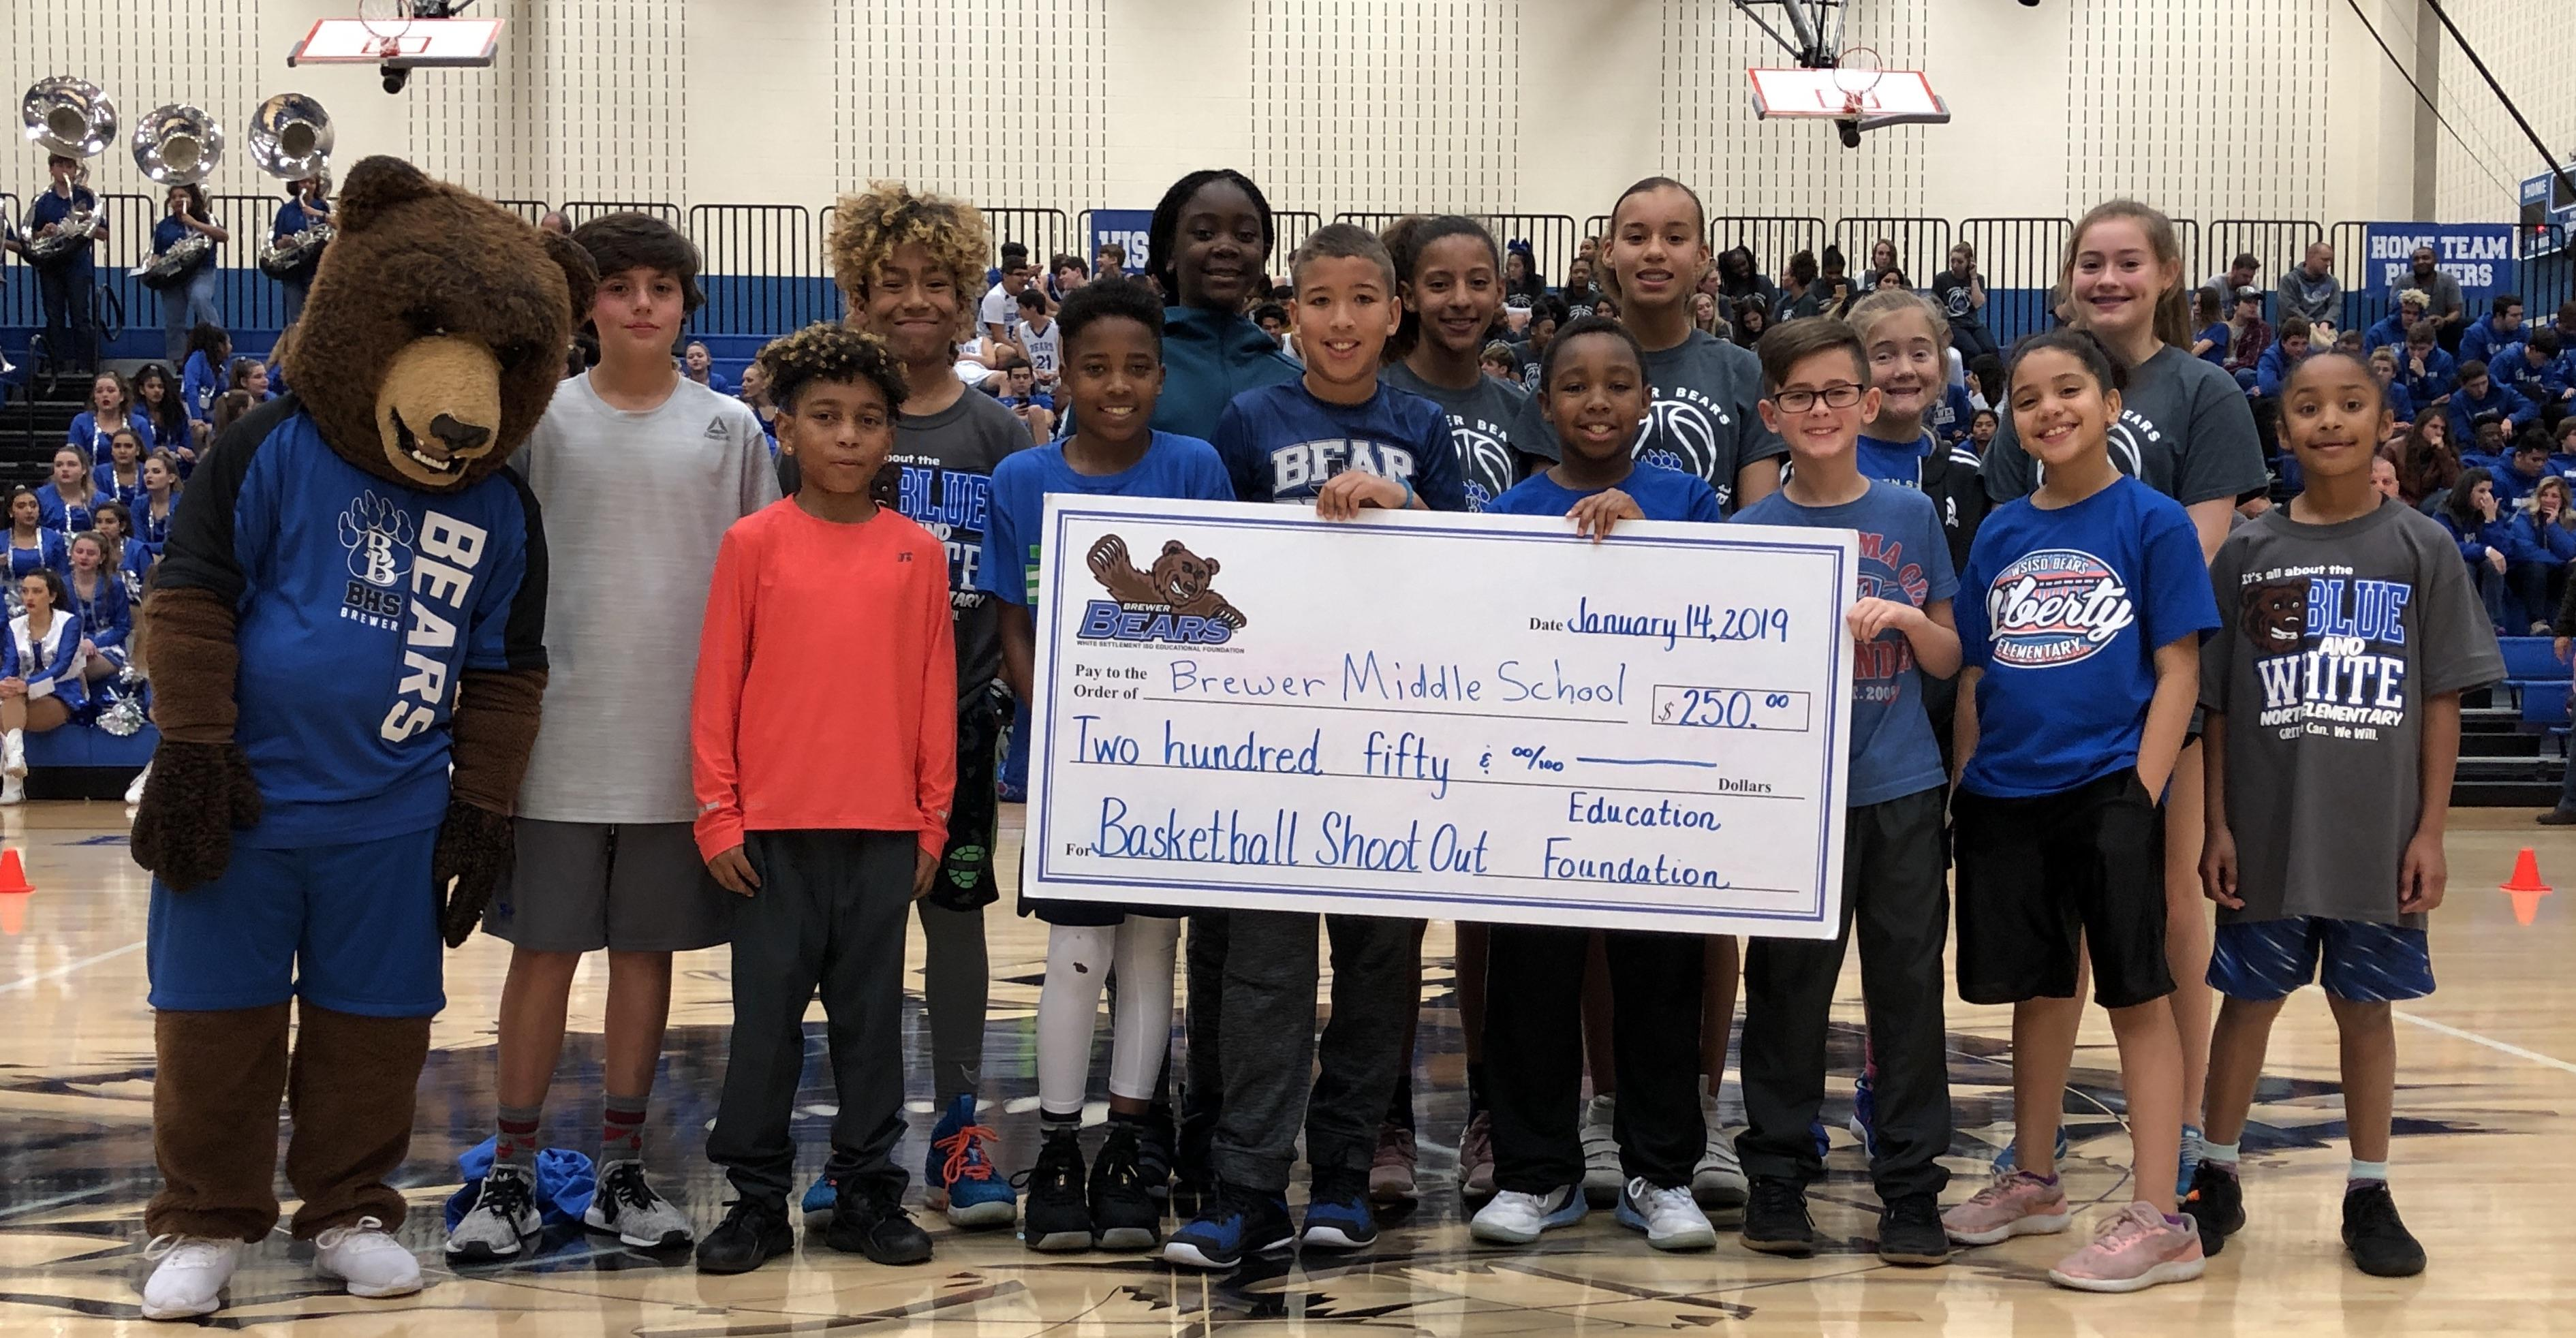 Select students competed in a Basketball Shootout and Soccer Kick Competition to win $250 each for their school.